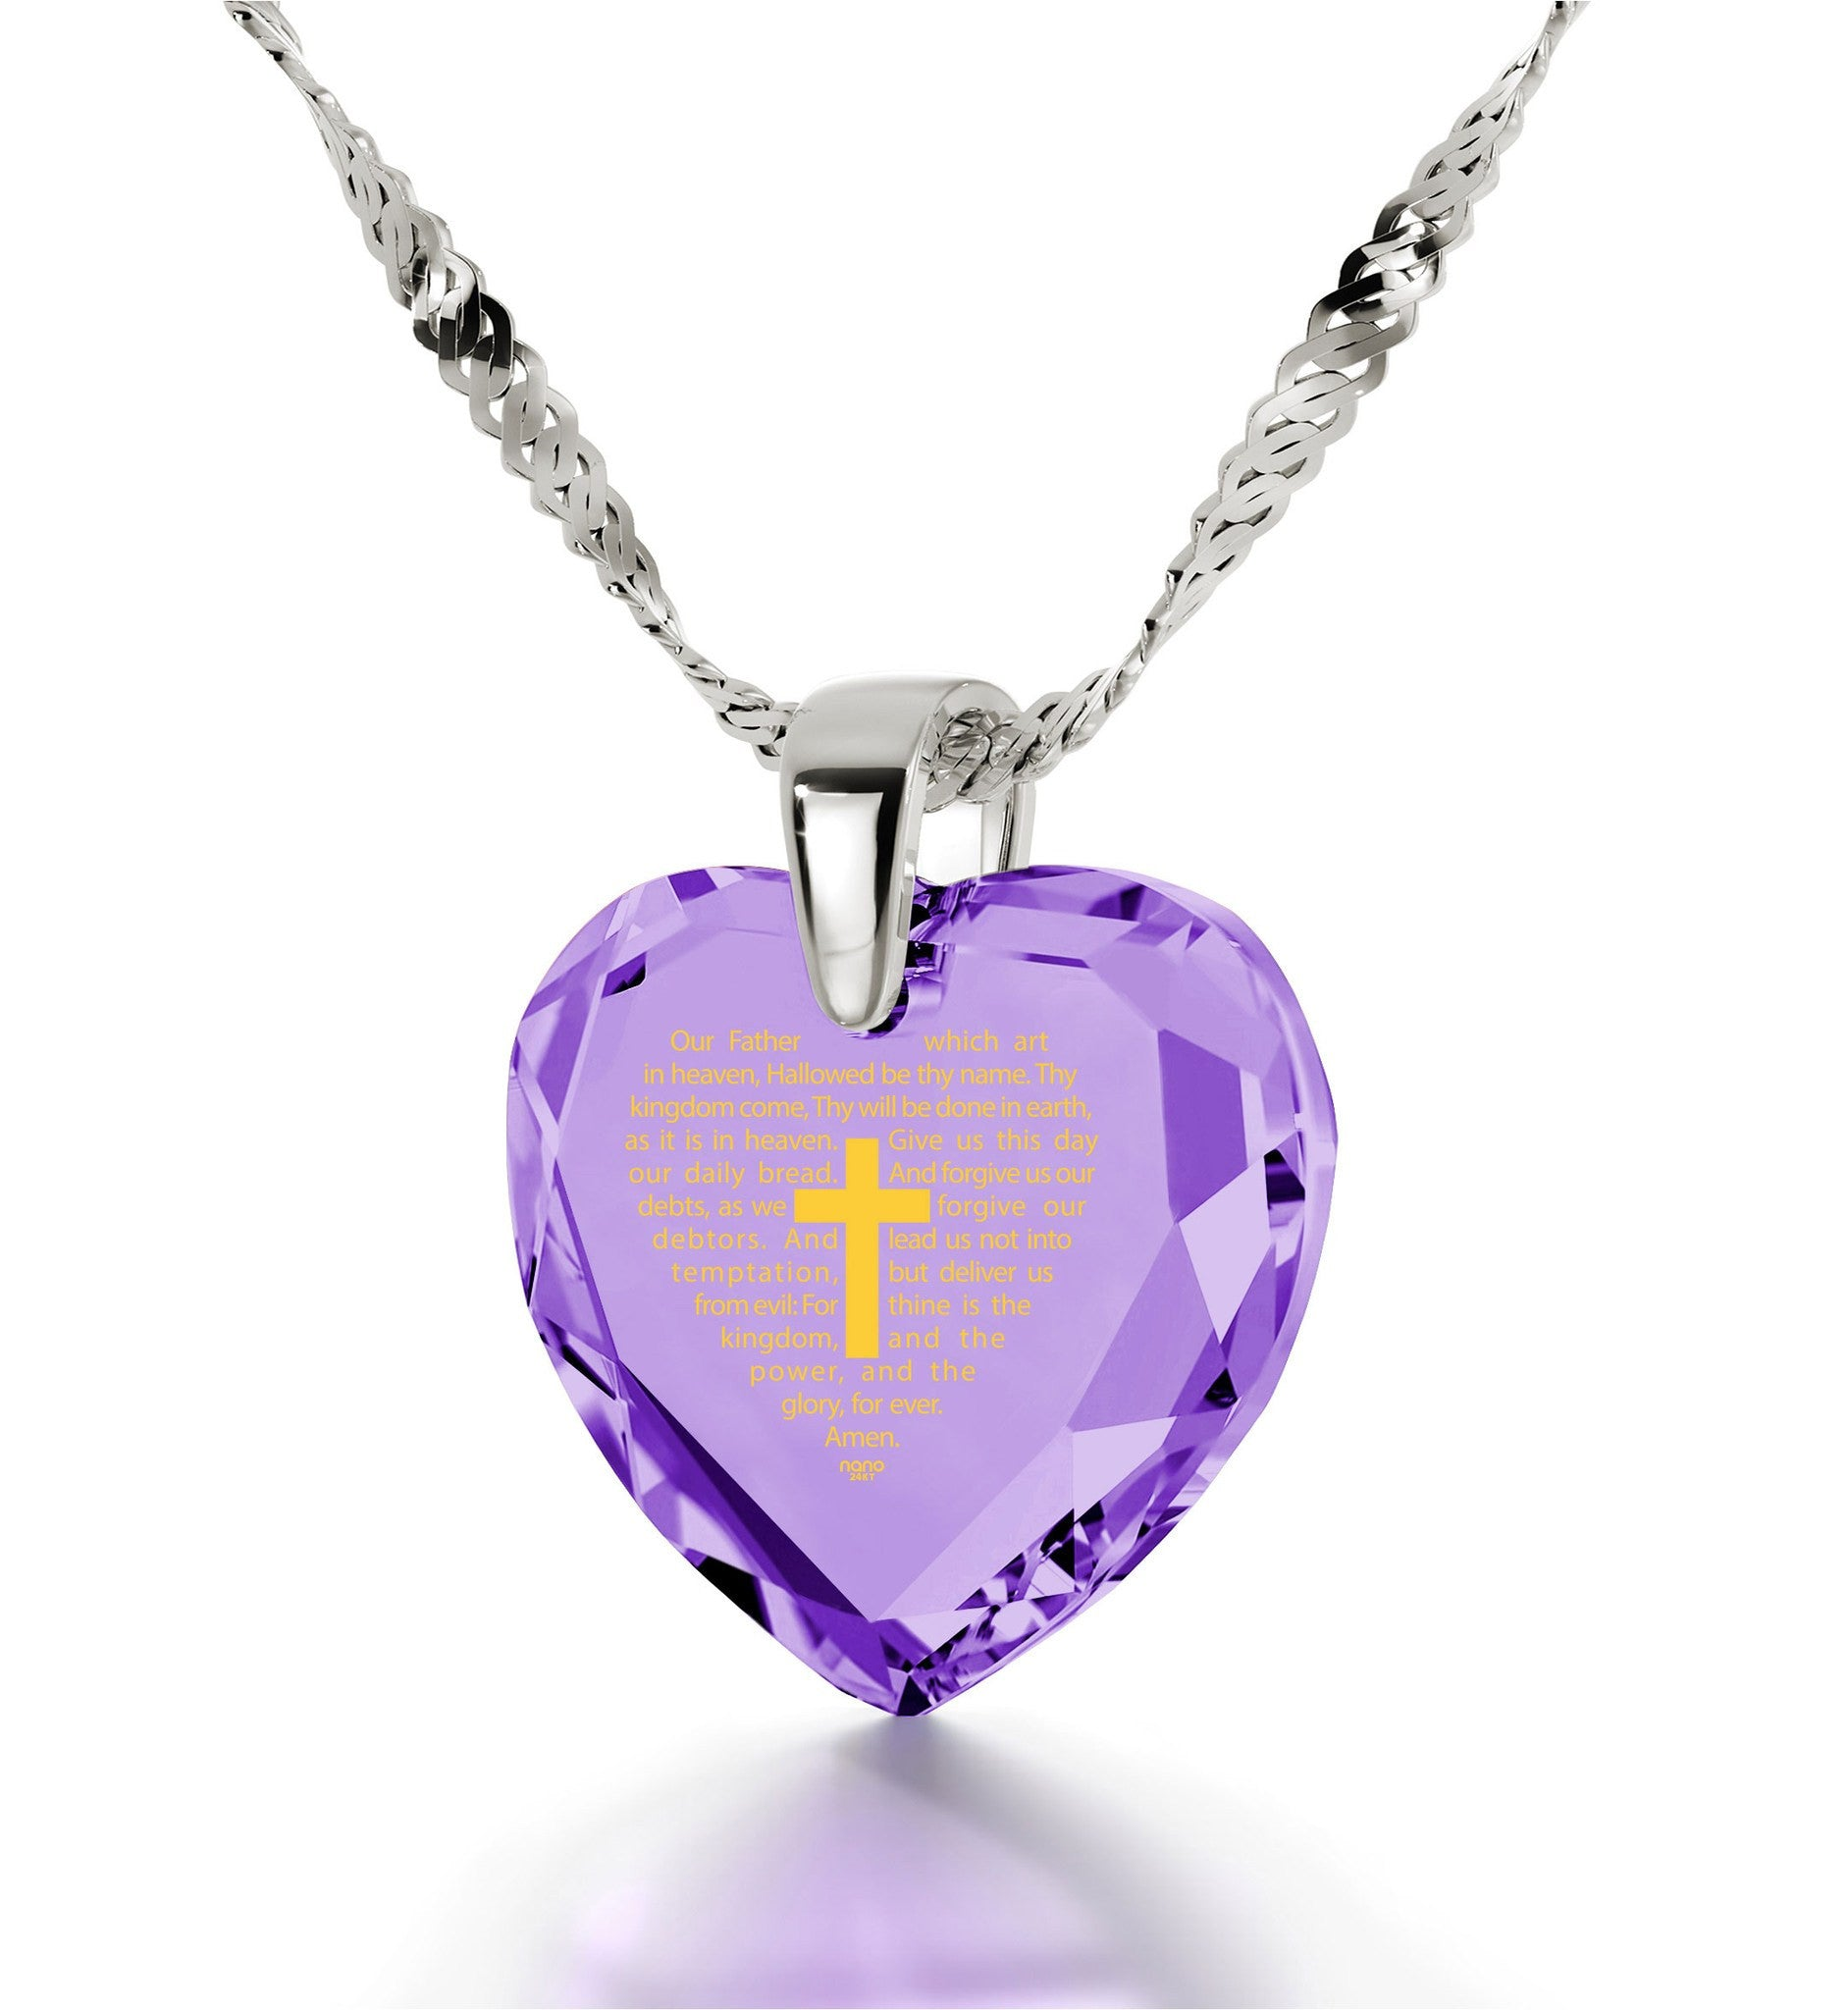 """Our Father: 14k White Gold Chain with Pendant, What to Get Mom for Her Birthday, Gifts for Catholics """